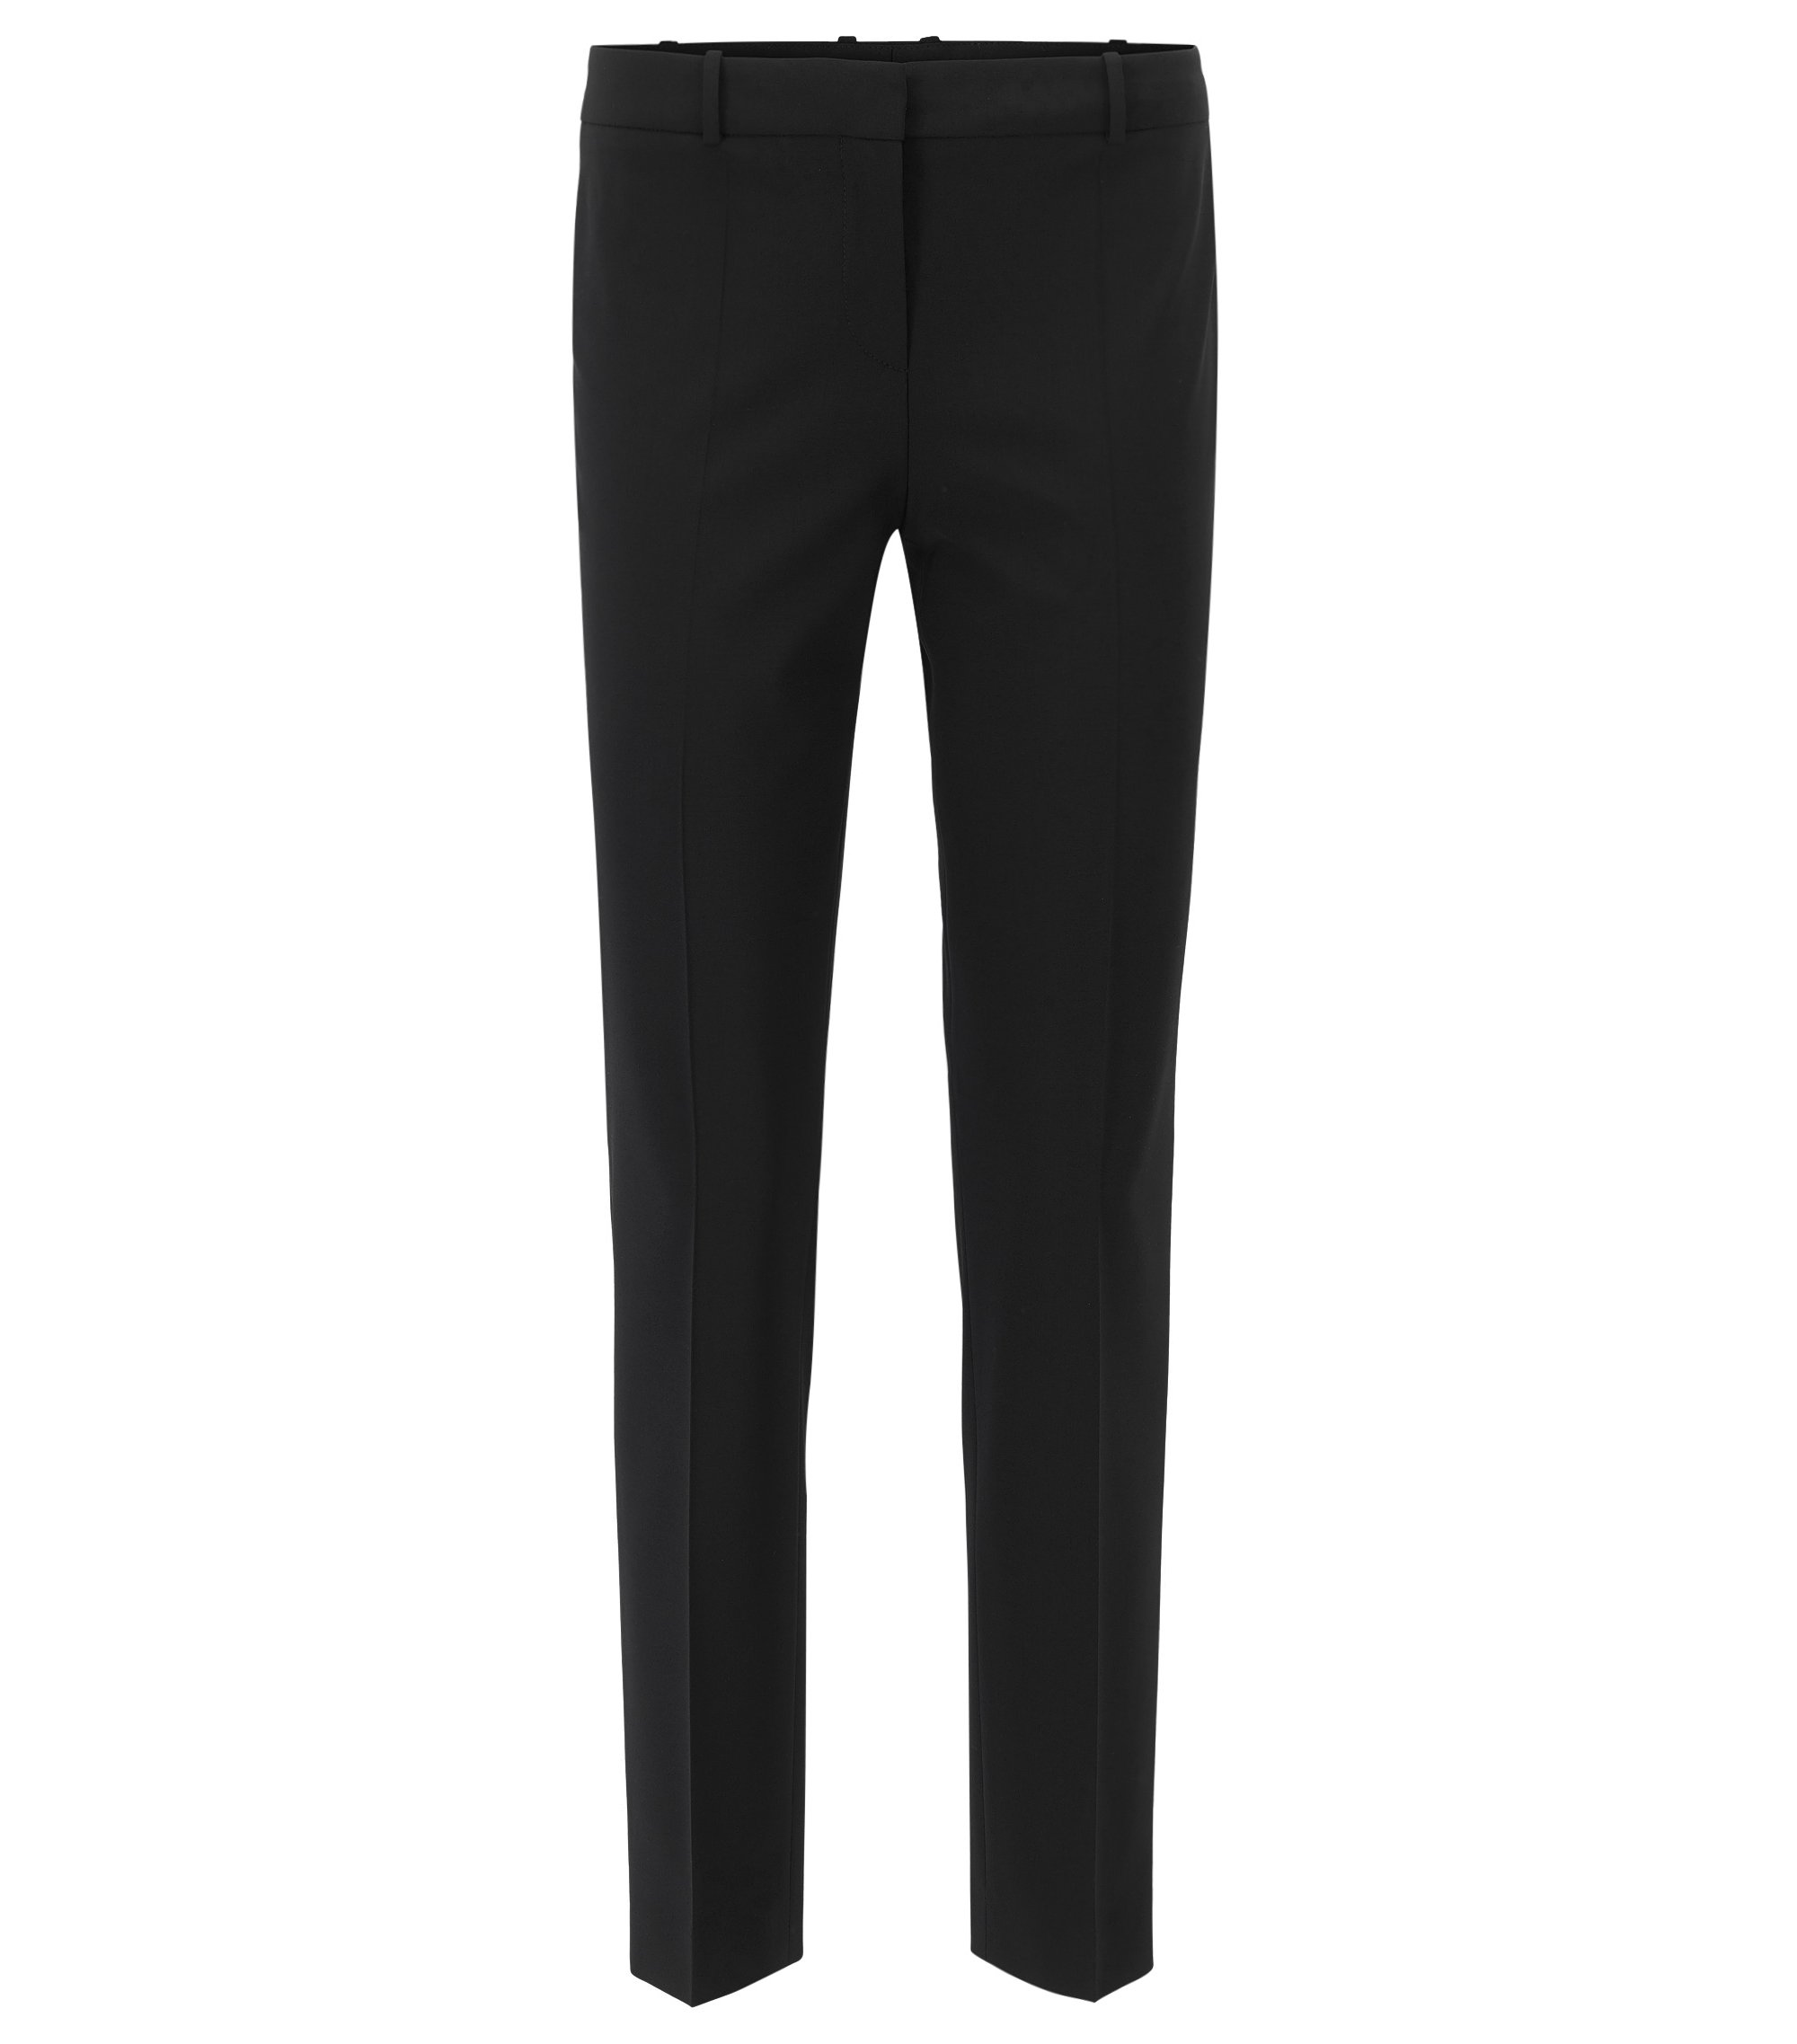 Stretch Virgin Wool Dress Pant | Tiluna, Black